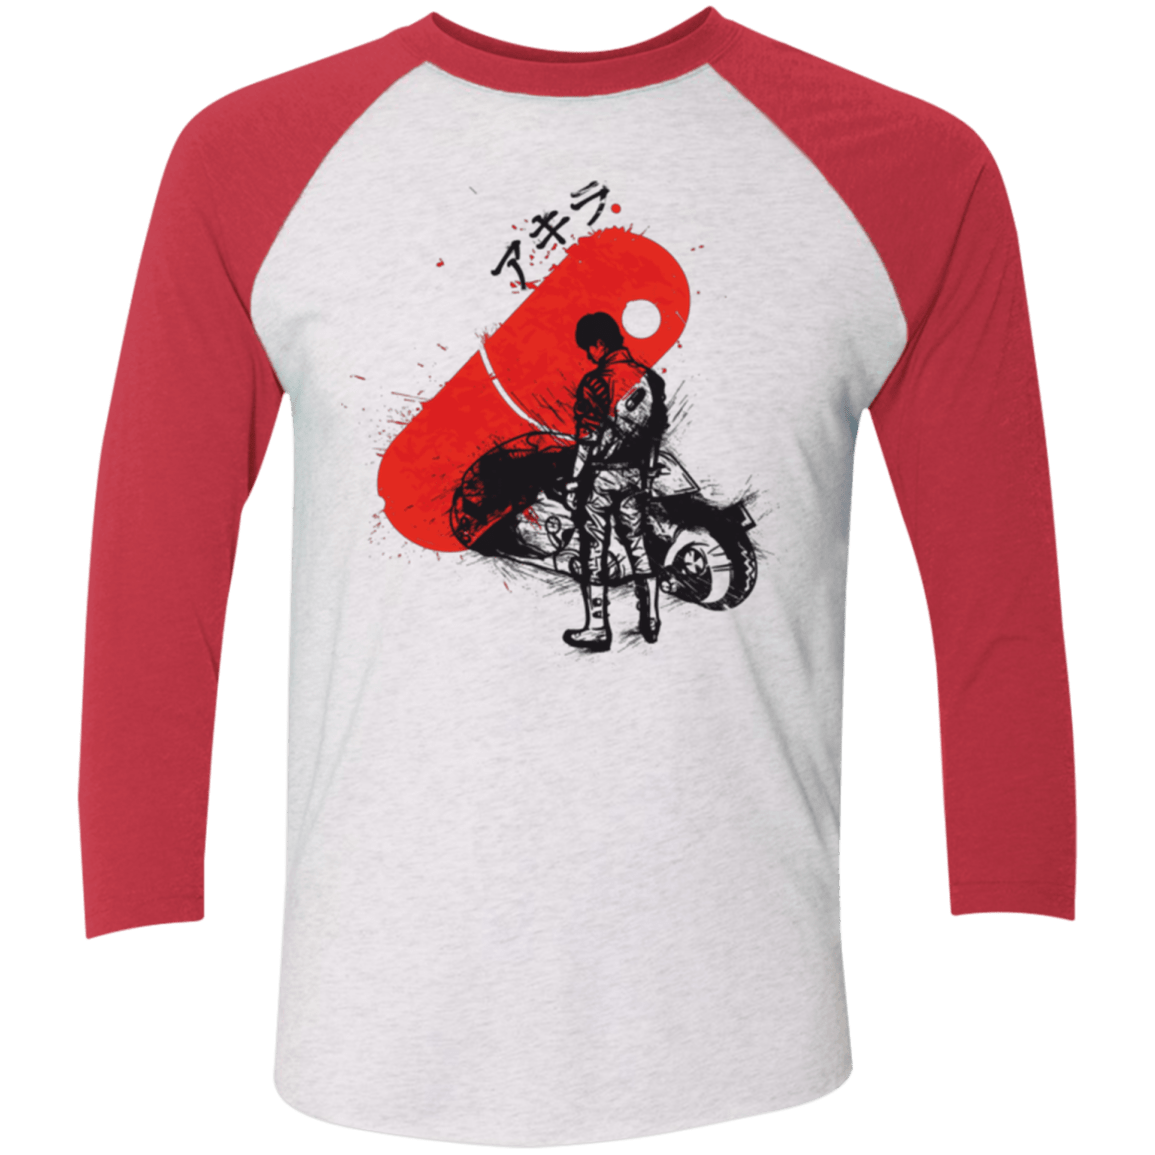 T-Shirts Heather White/Vintage Red / X-Small RED SUN AKIRA Men's Triblend 3/4 Sleeve